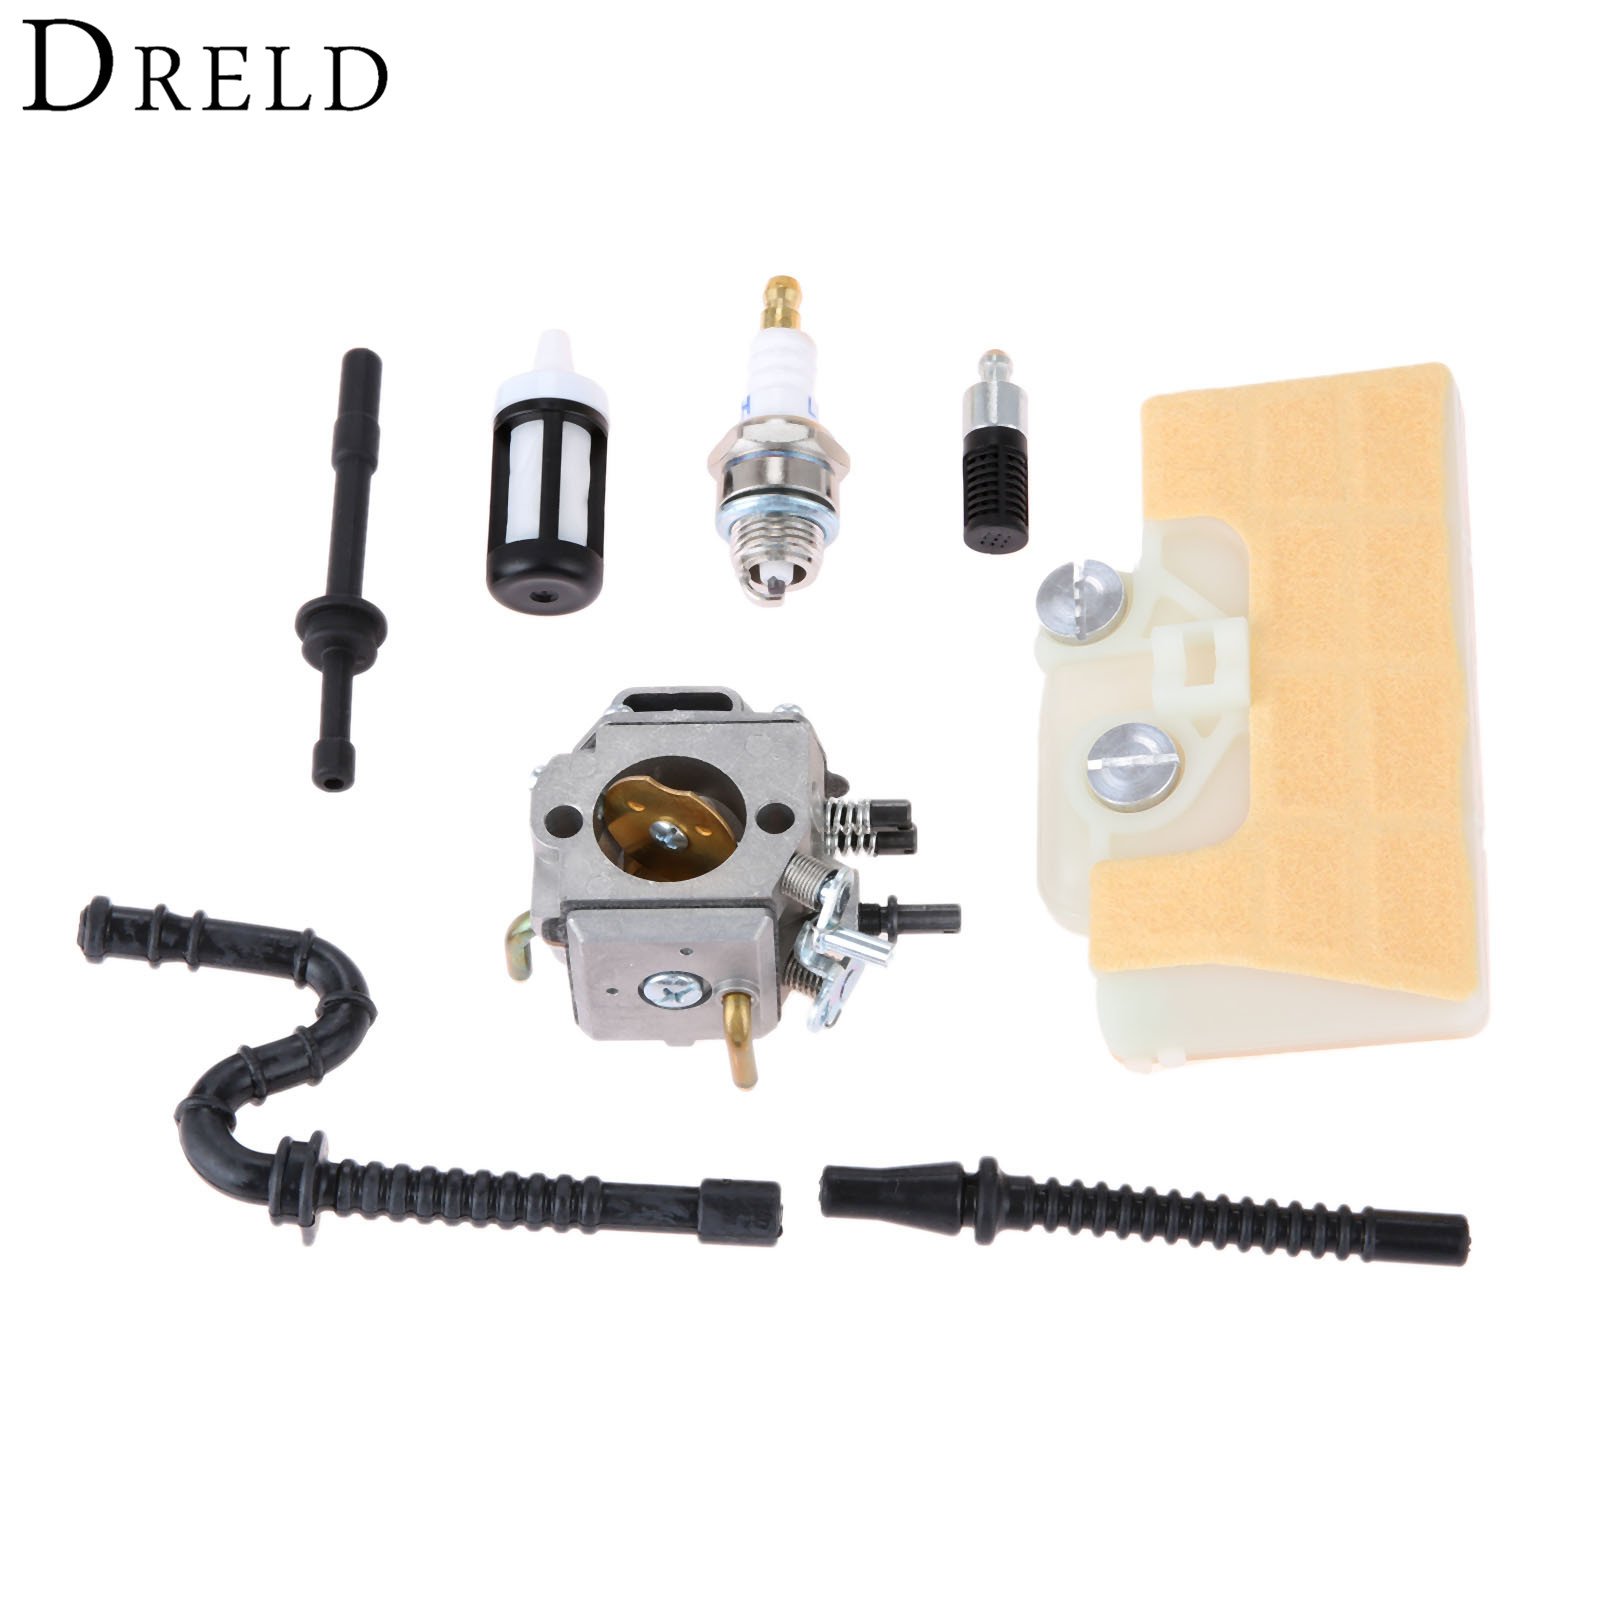 DRELD Carburetor Carb with Air Filter Fuel Line Spark Plug Repower Kit for STIHL MS290 MS310 MS390 029 039 Chainsaw Garden Tools Price $29.32